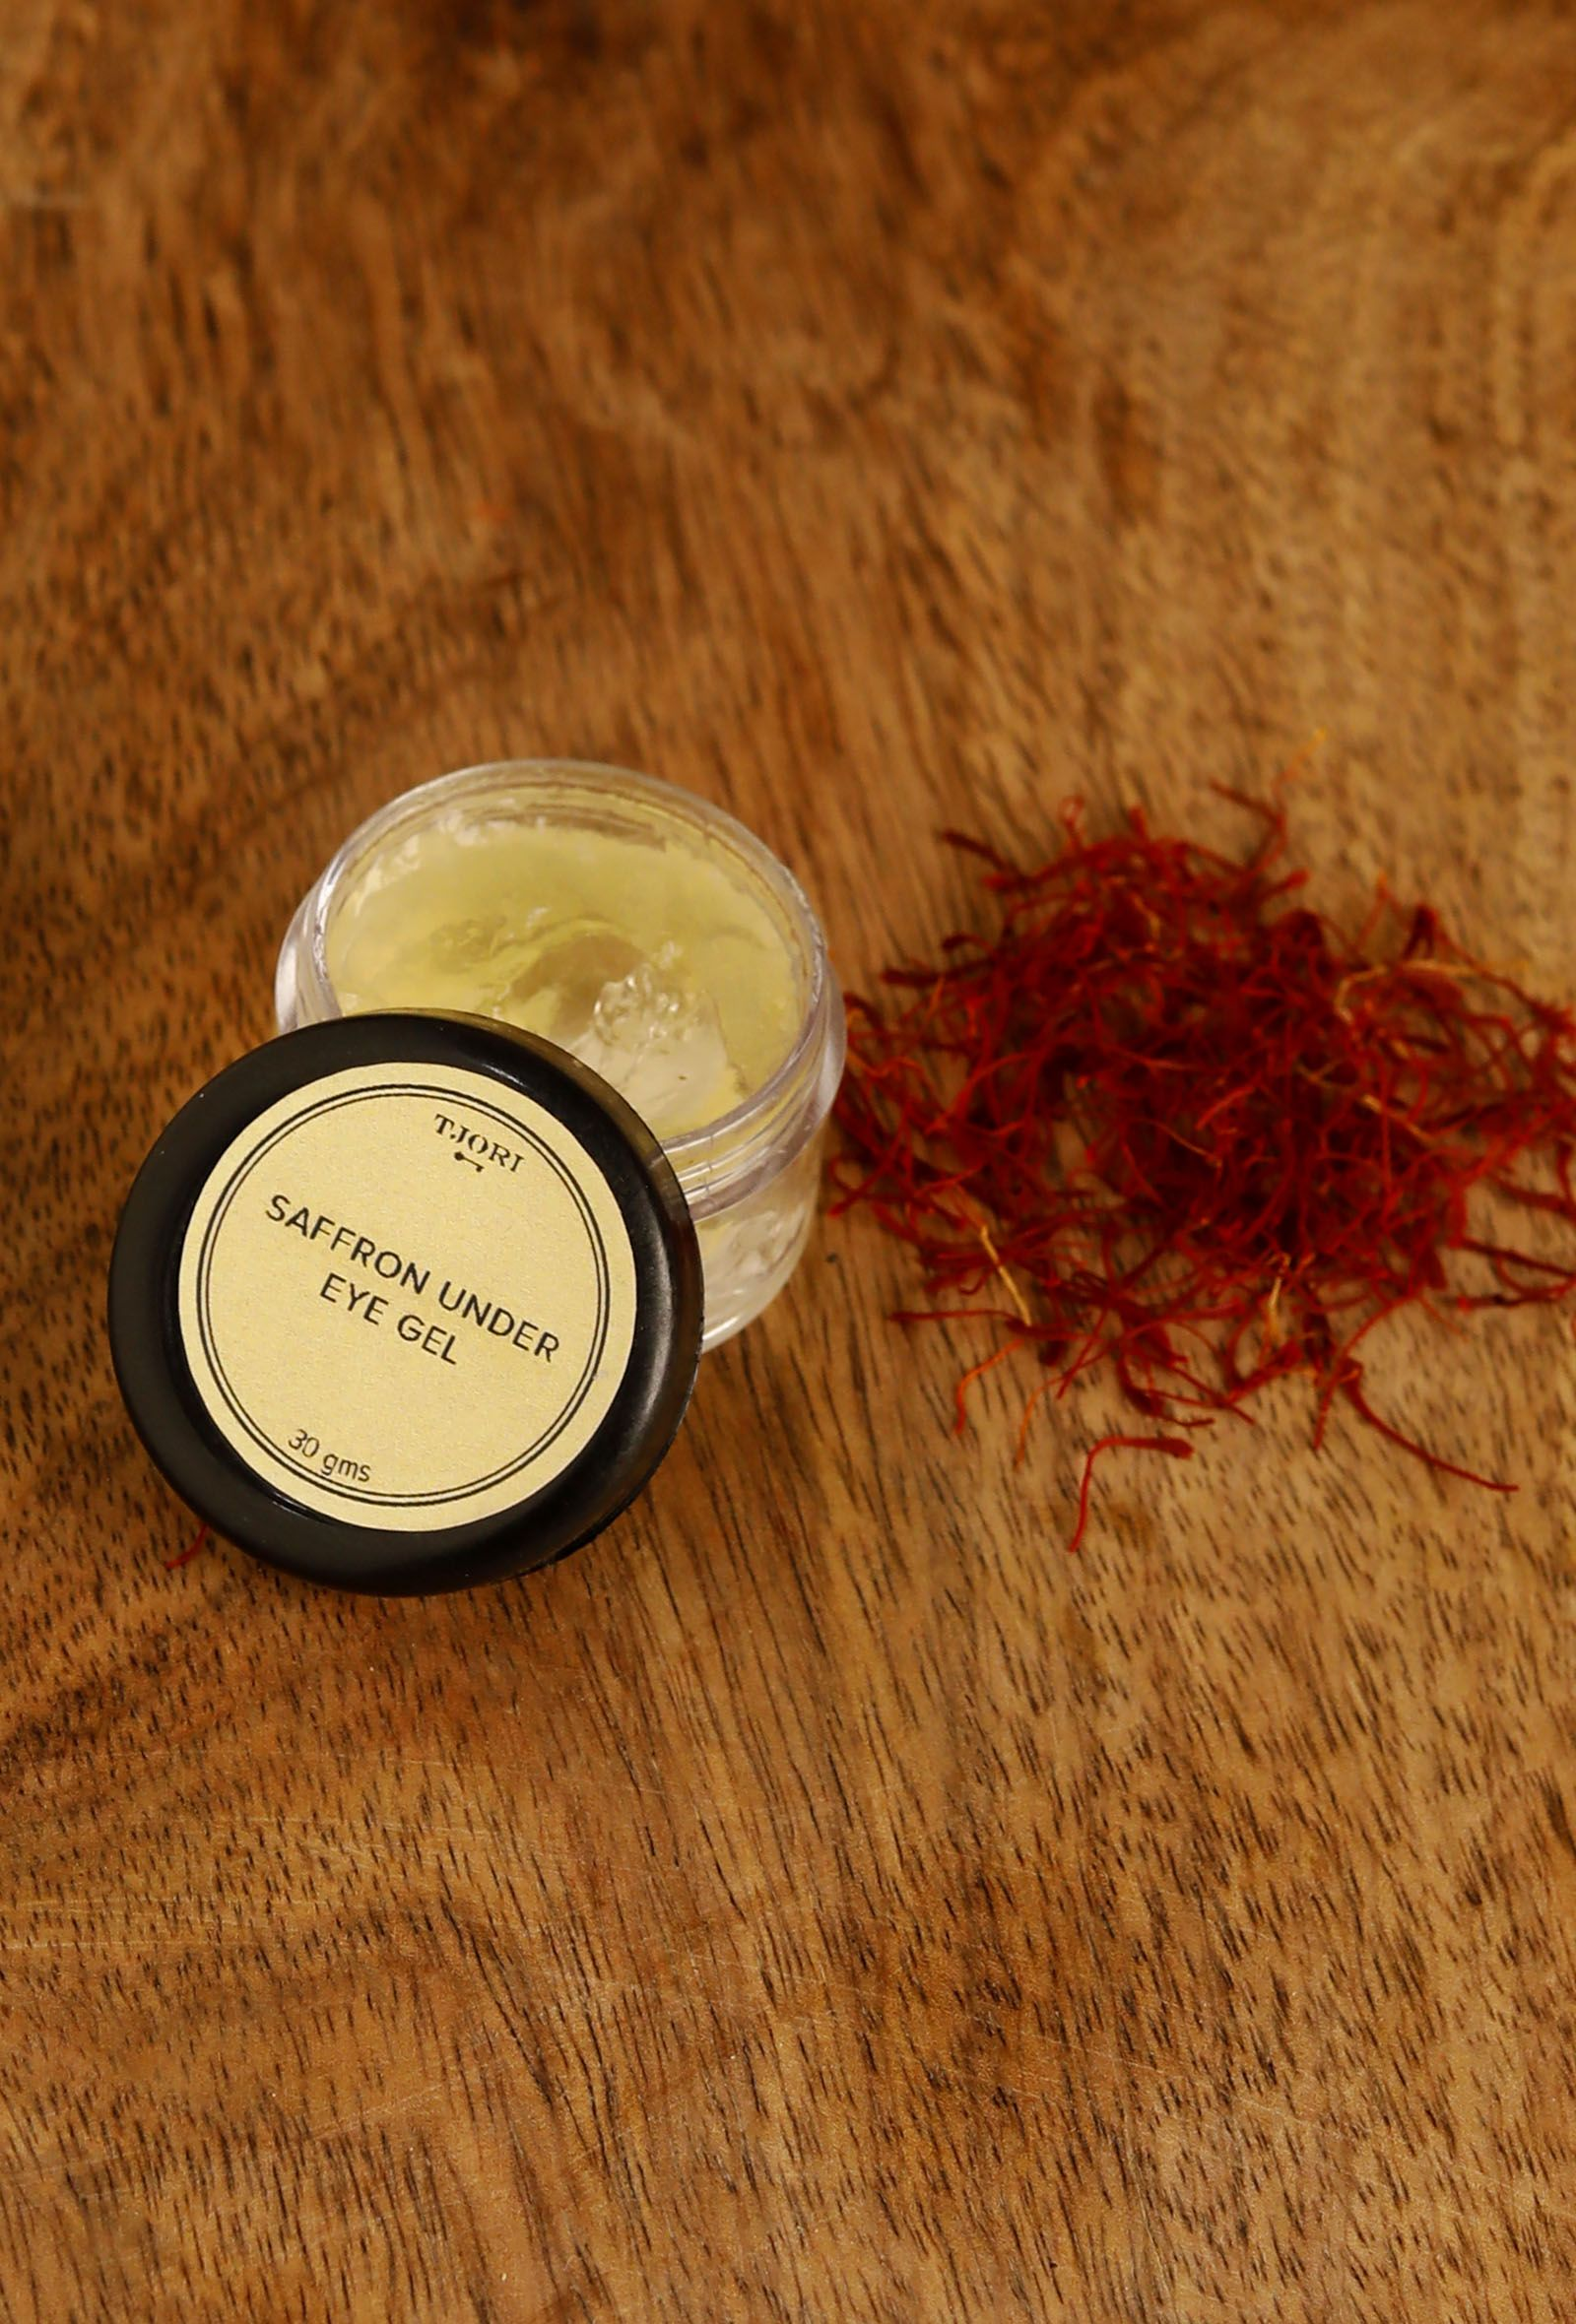 known as red gold for its many benefits, saffron helps